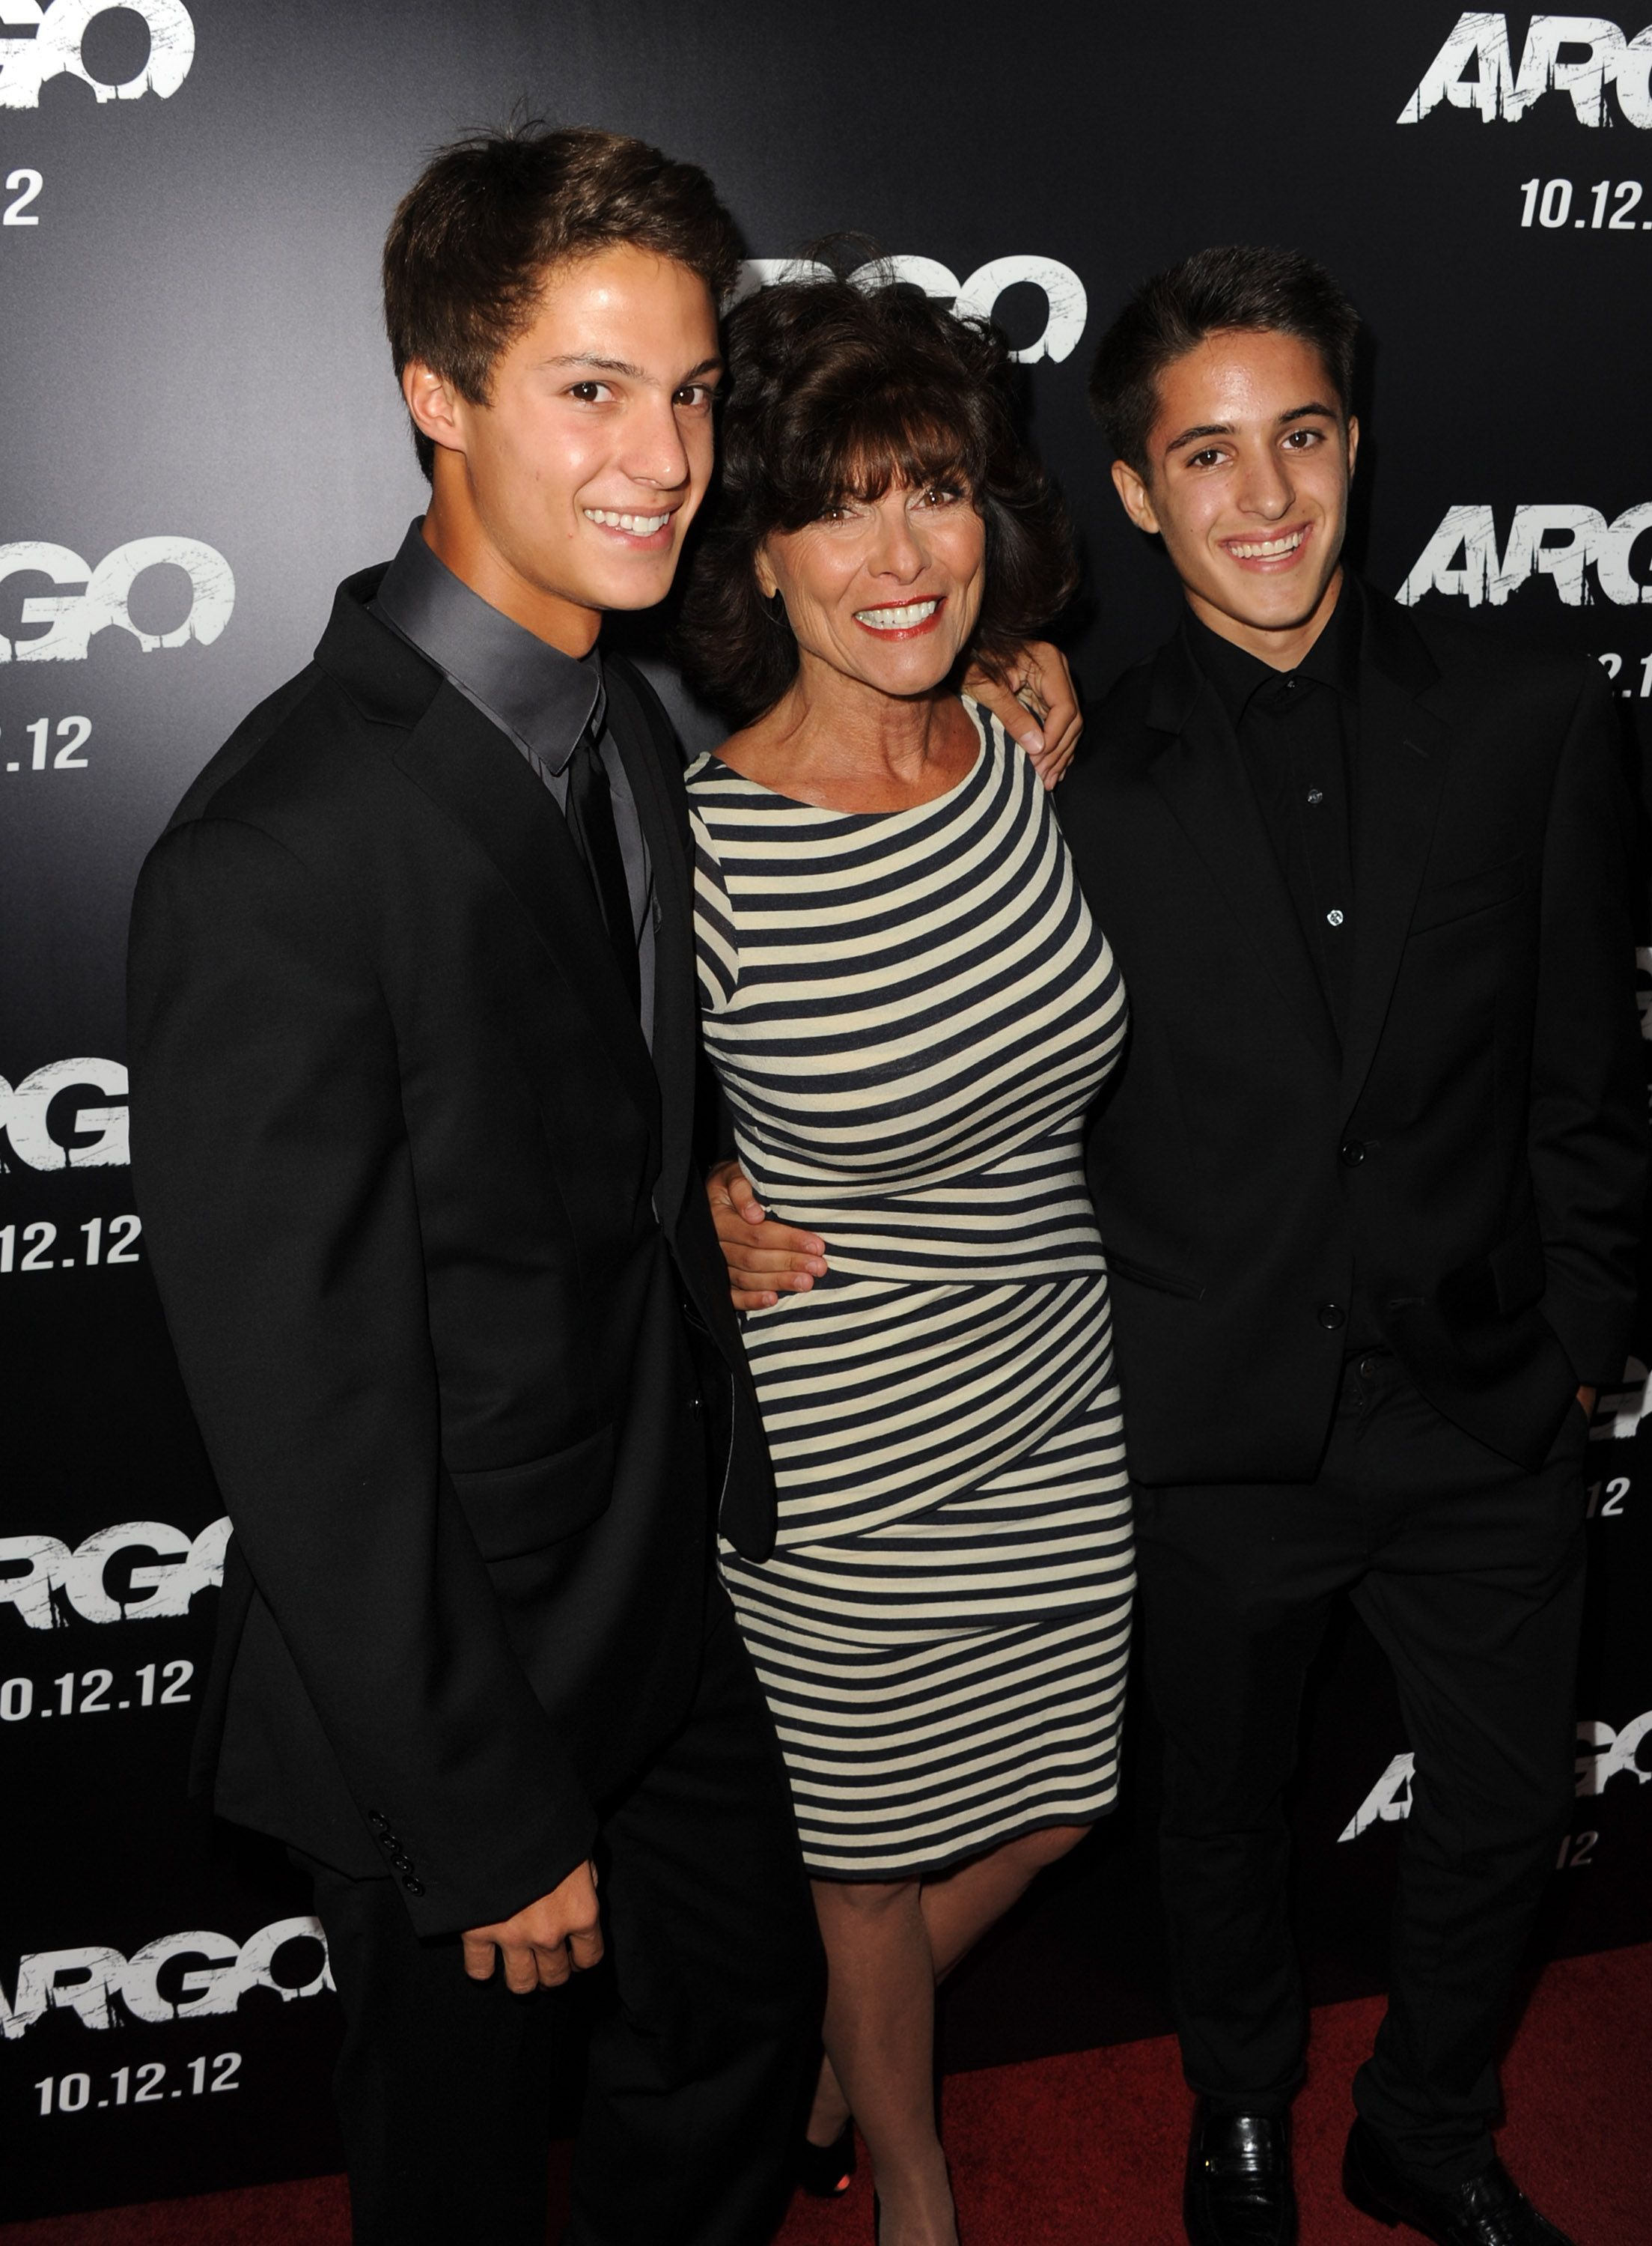 Adrienne Barbeau with William and Walker at AMPAS Samuel Goldwyn Theater on October 4, 2012 in Beverly Hills, California. | Photo: Getty Images